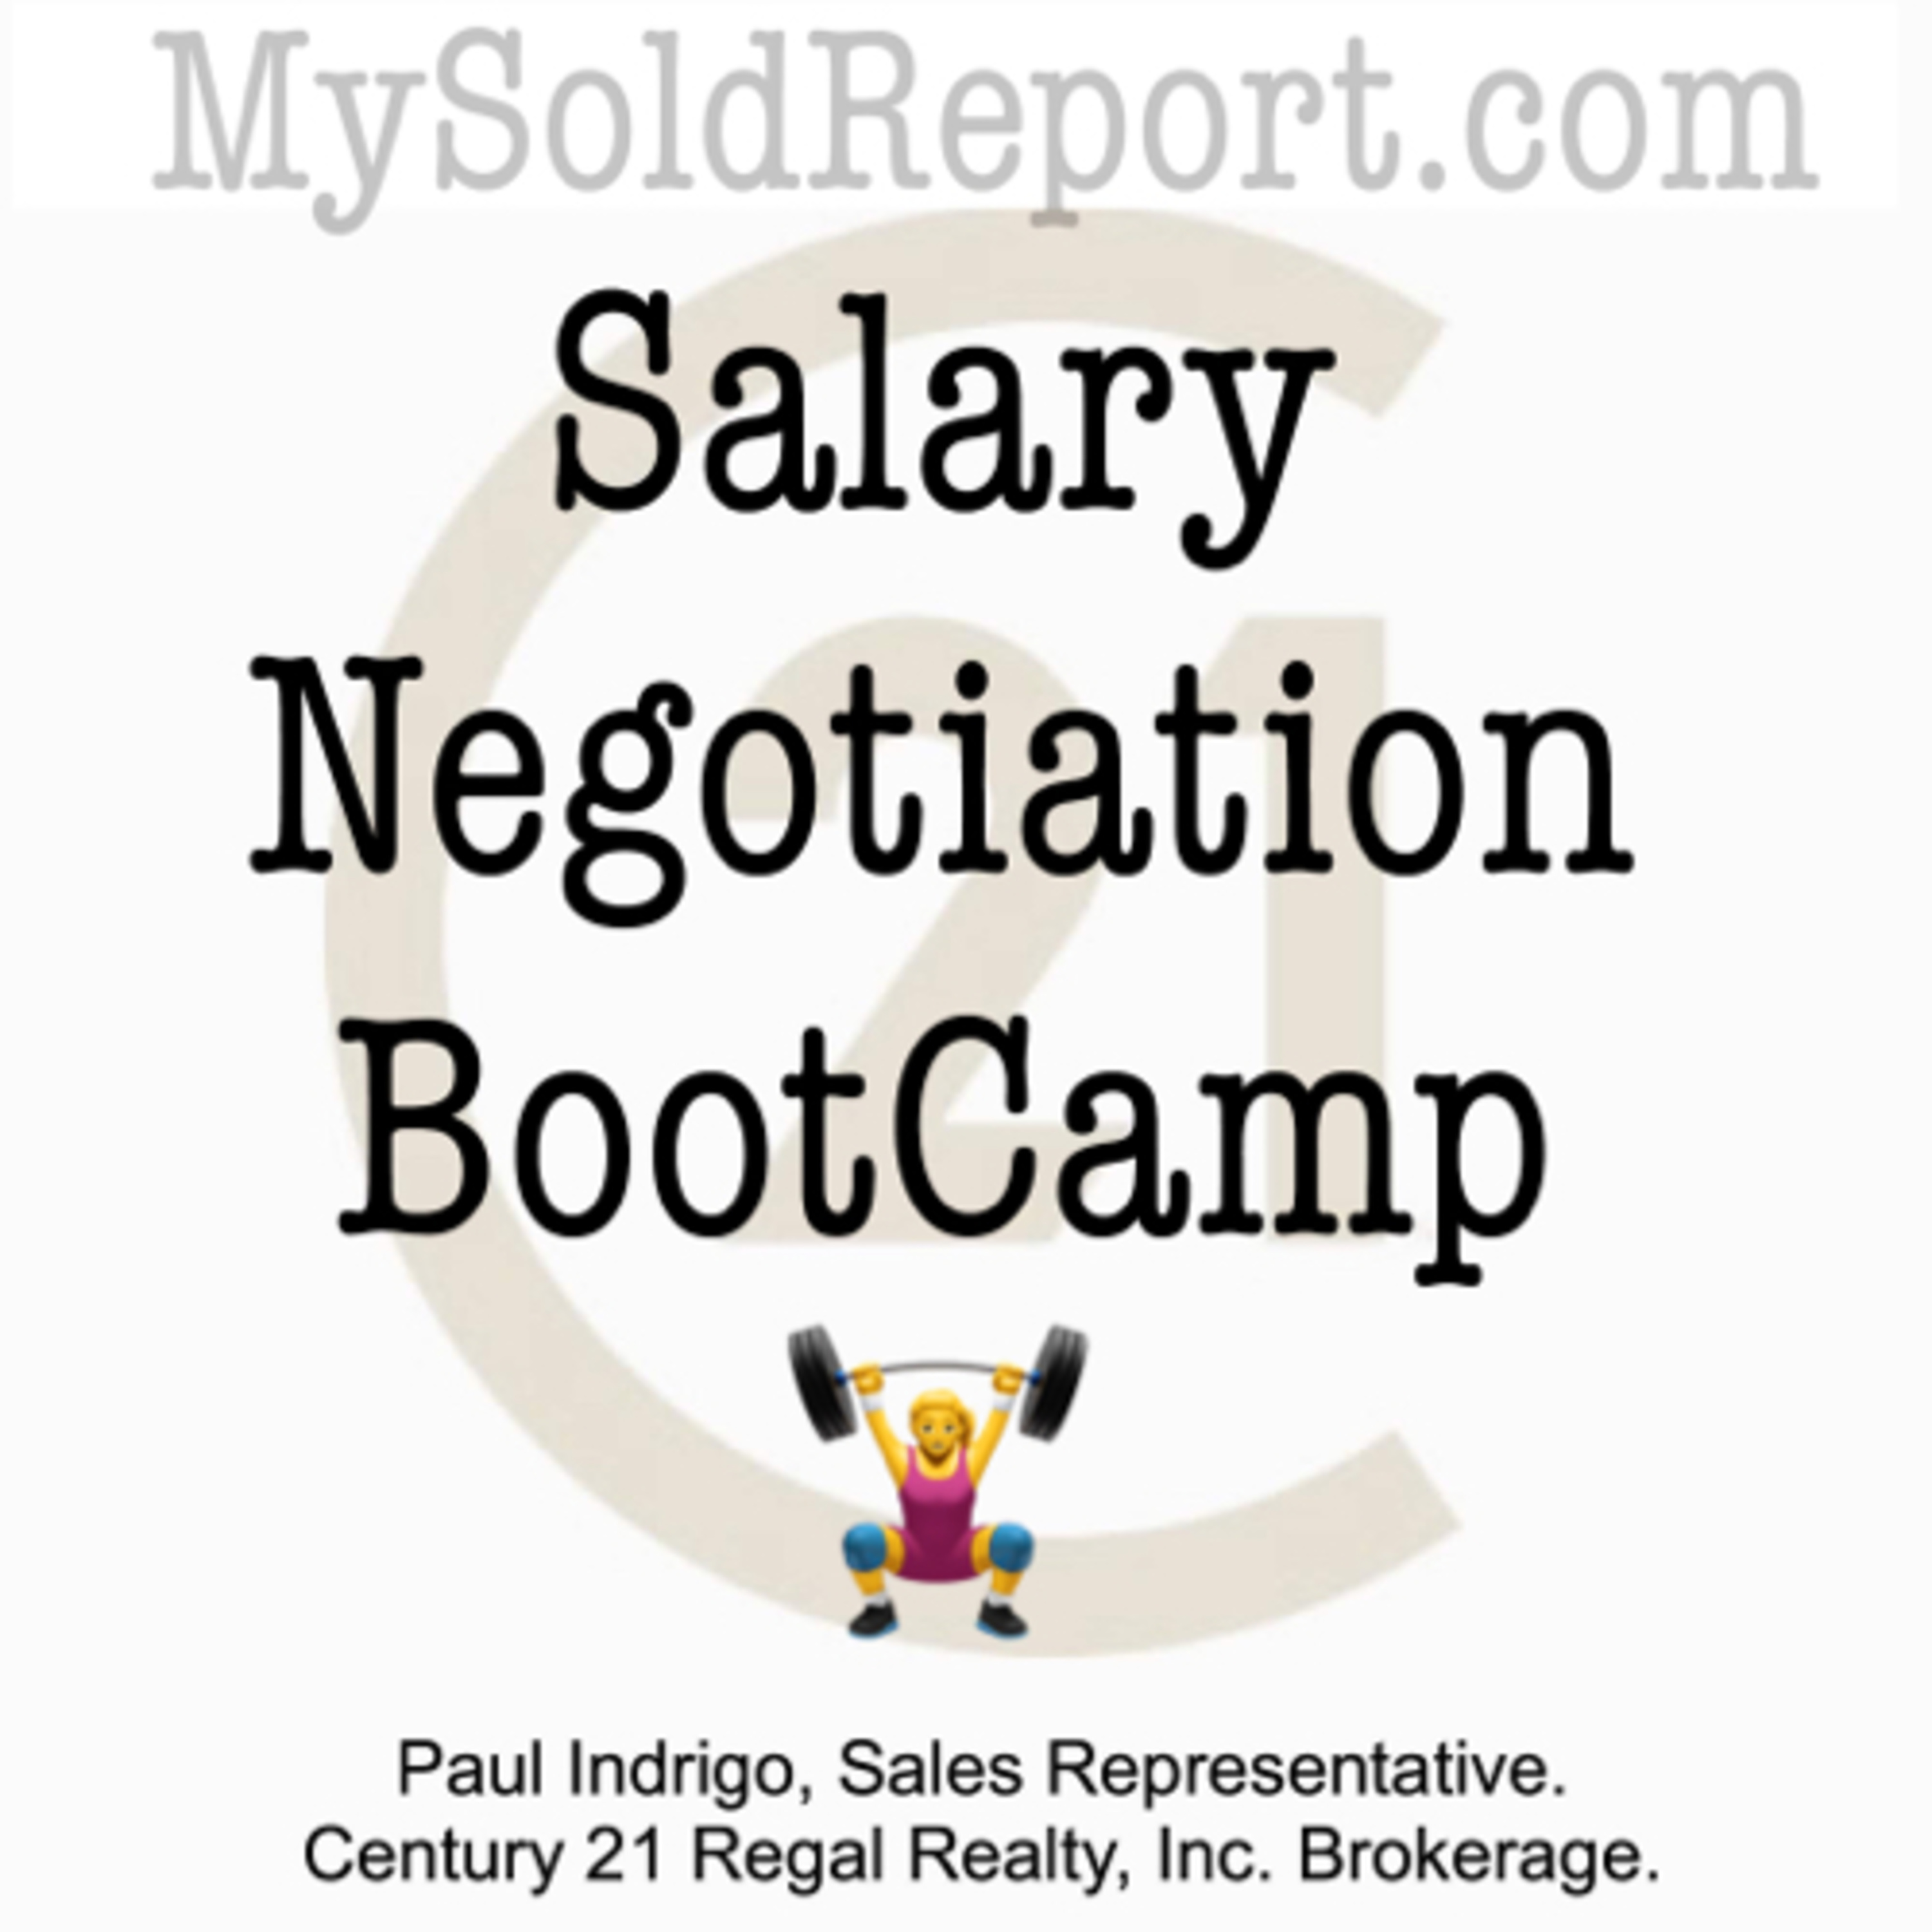 Episode 117: Salary Negotiation BootCamp starts now